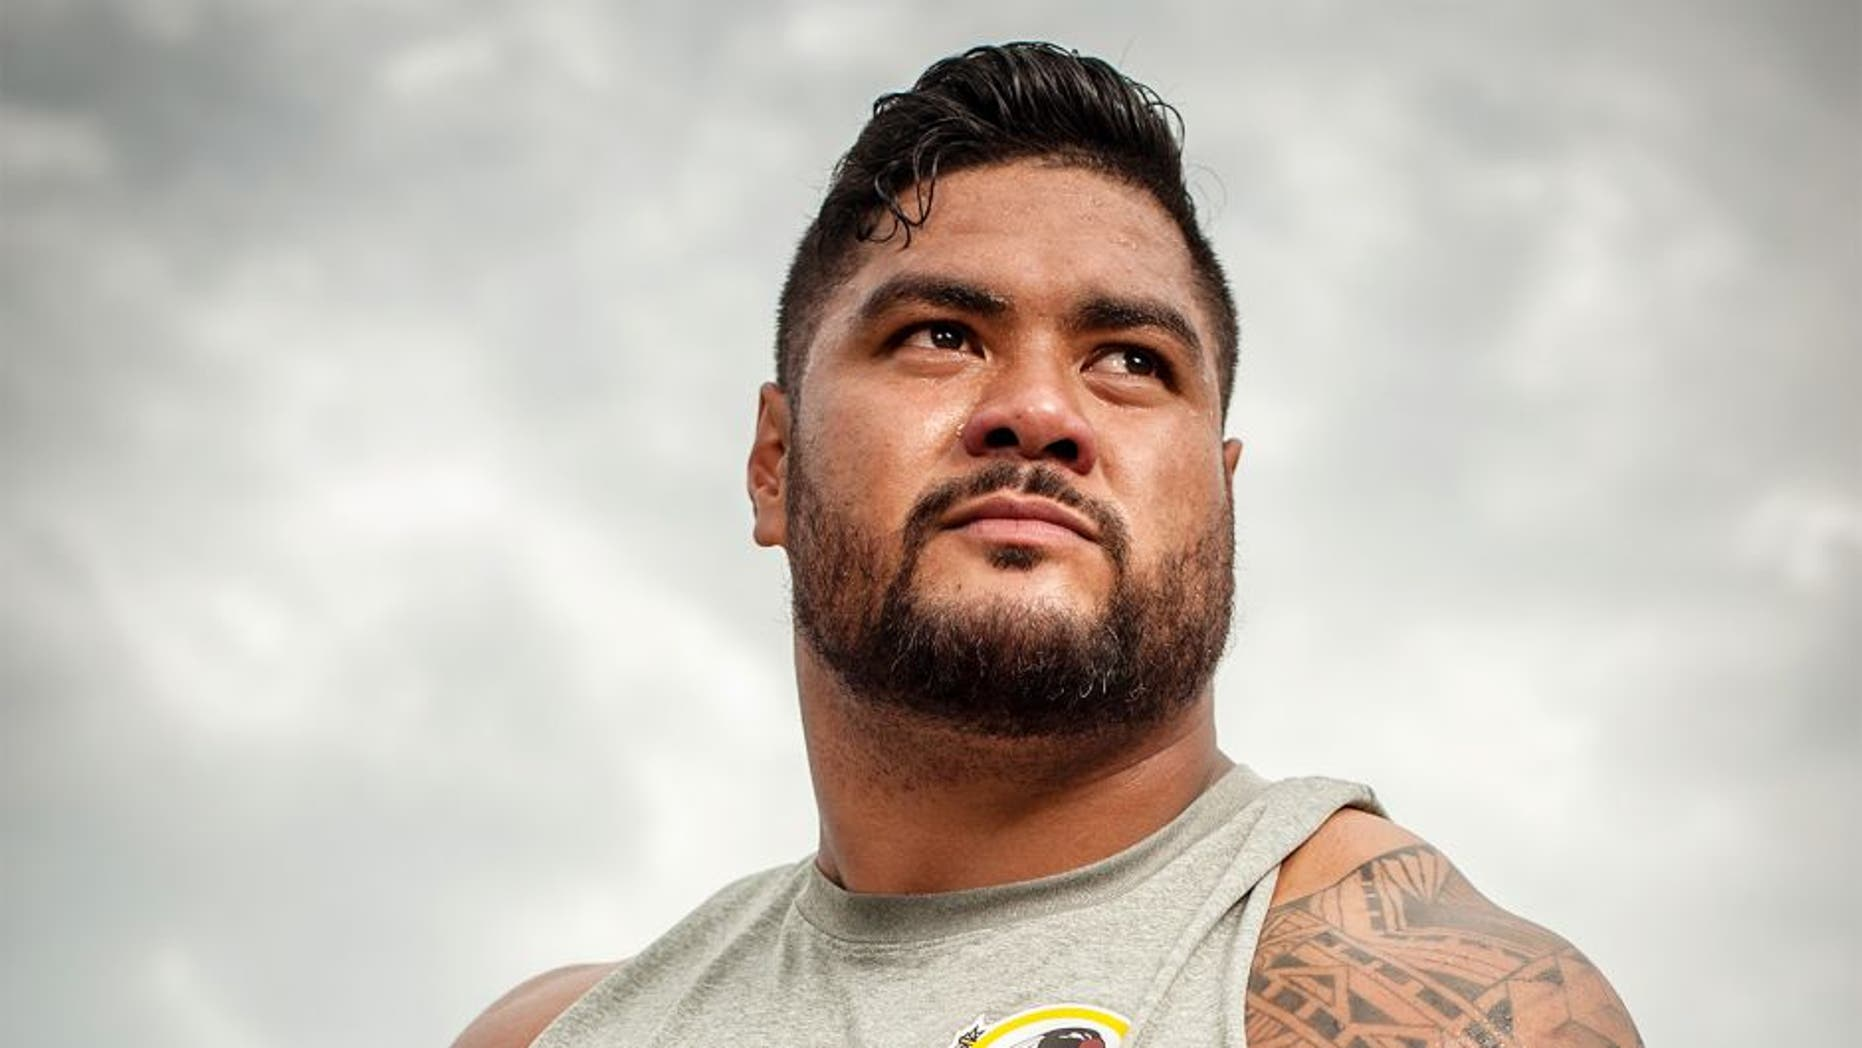 ASHBURN, VA -- AUGUST 09: Stephen Paea, Redskins Defensive End for Just Asking Profile. (photo by Andre Chung for The Washington Post via Getty Images)